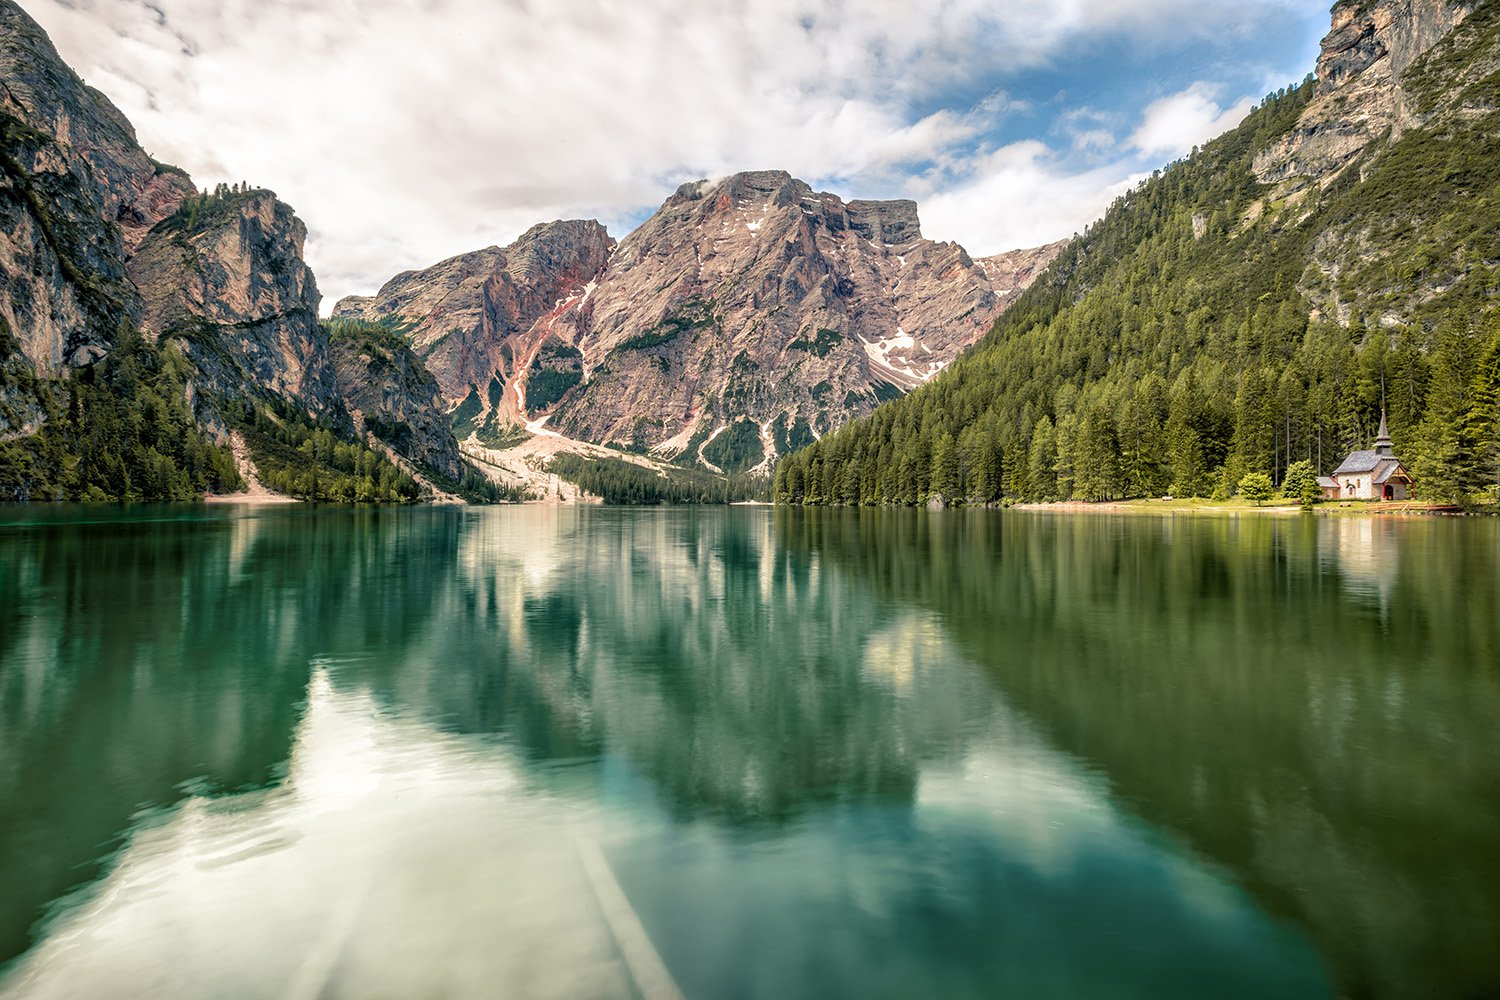 Why I Fell in Love with Lago di Braies